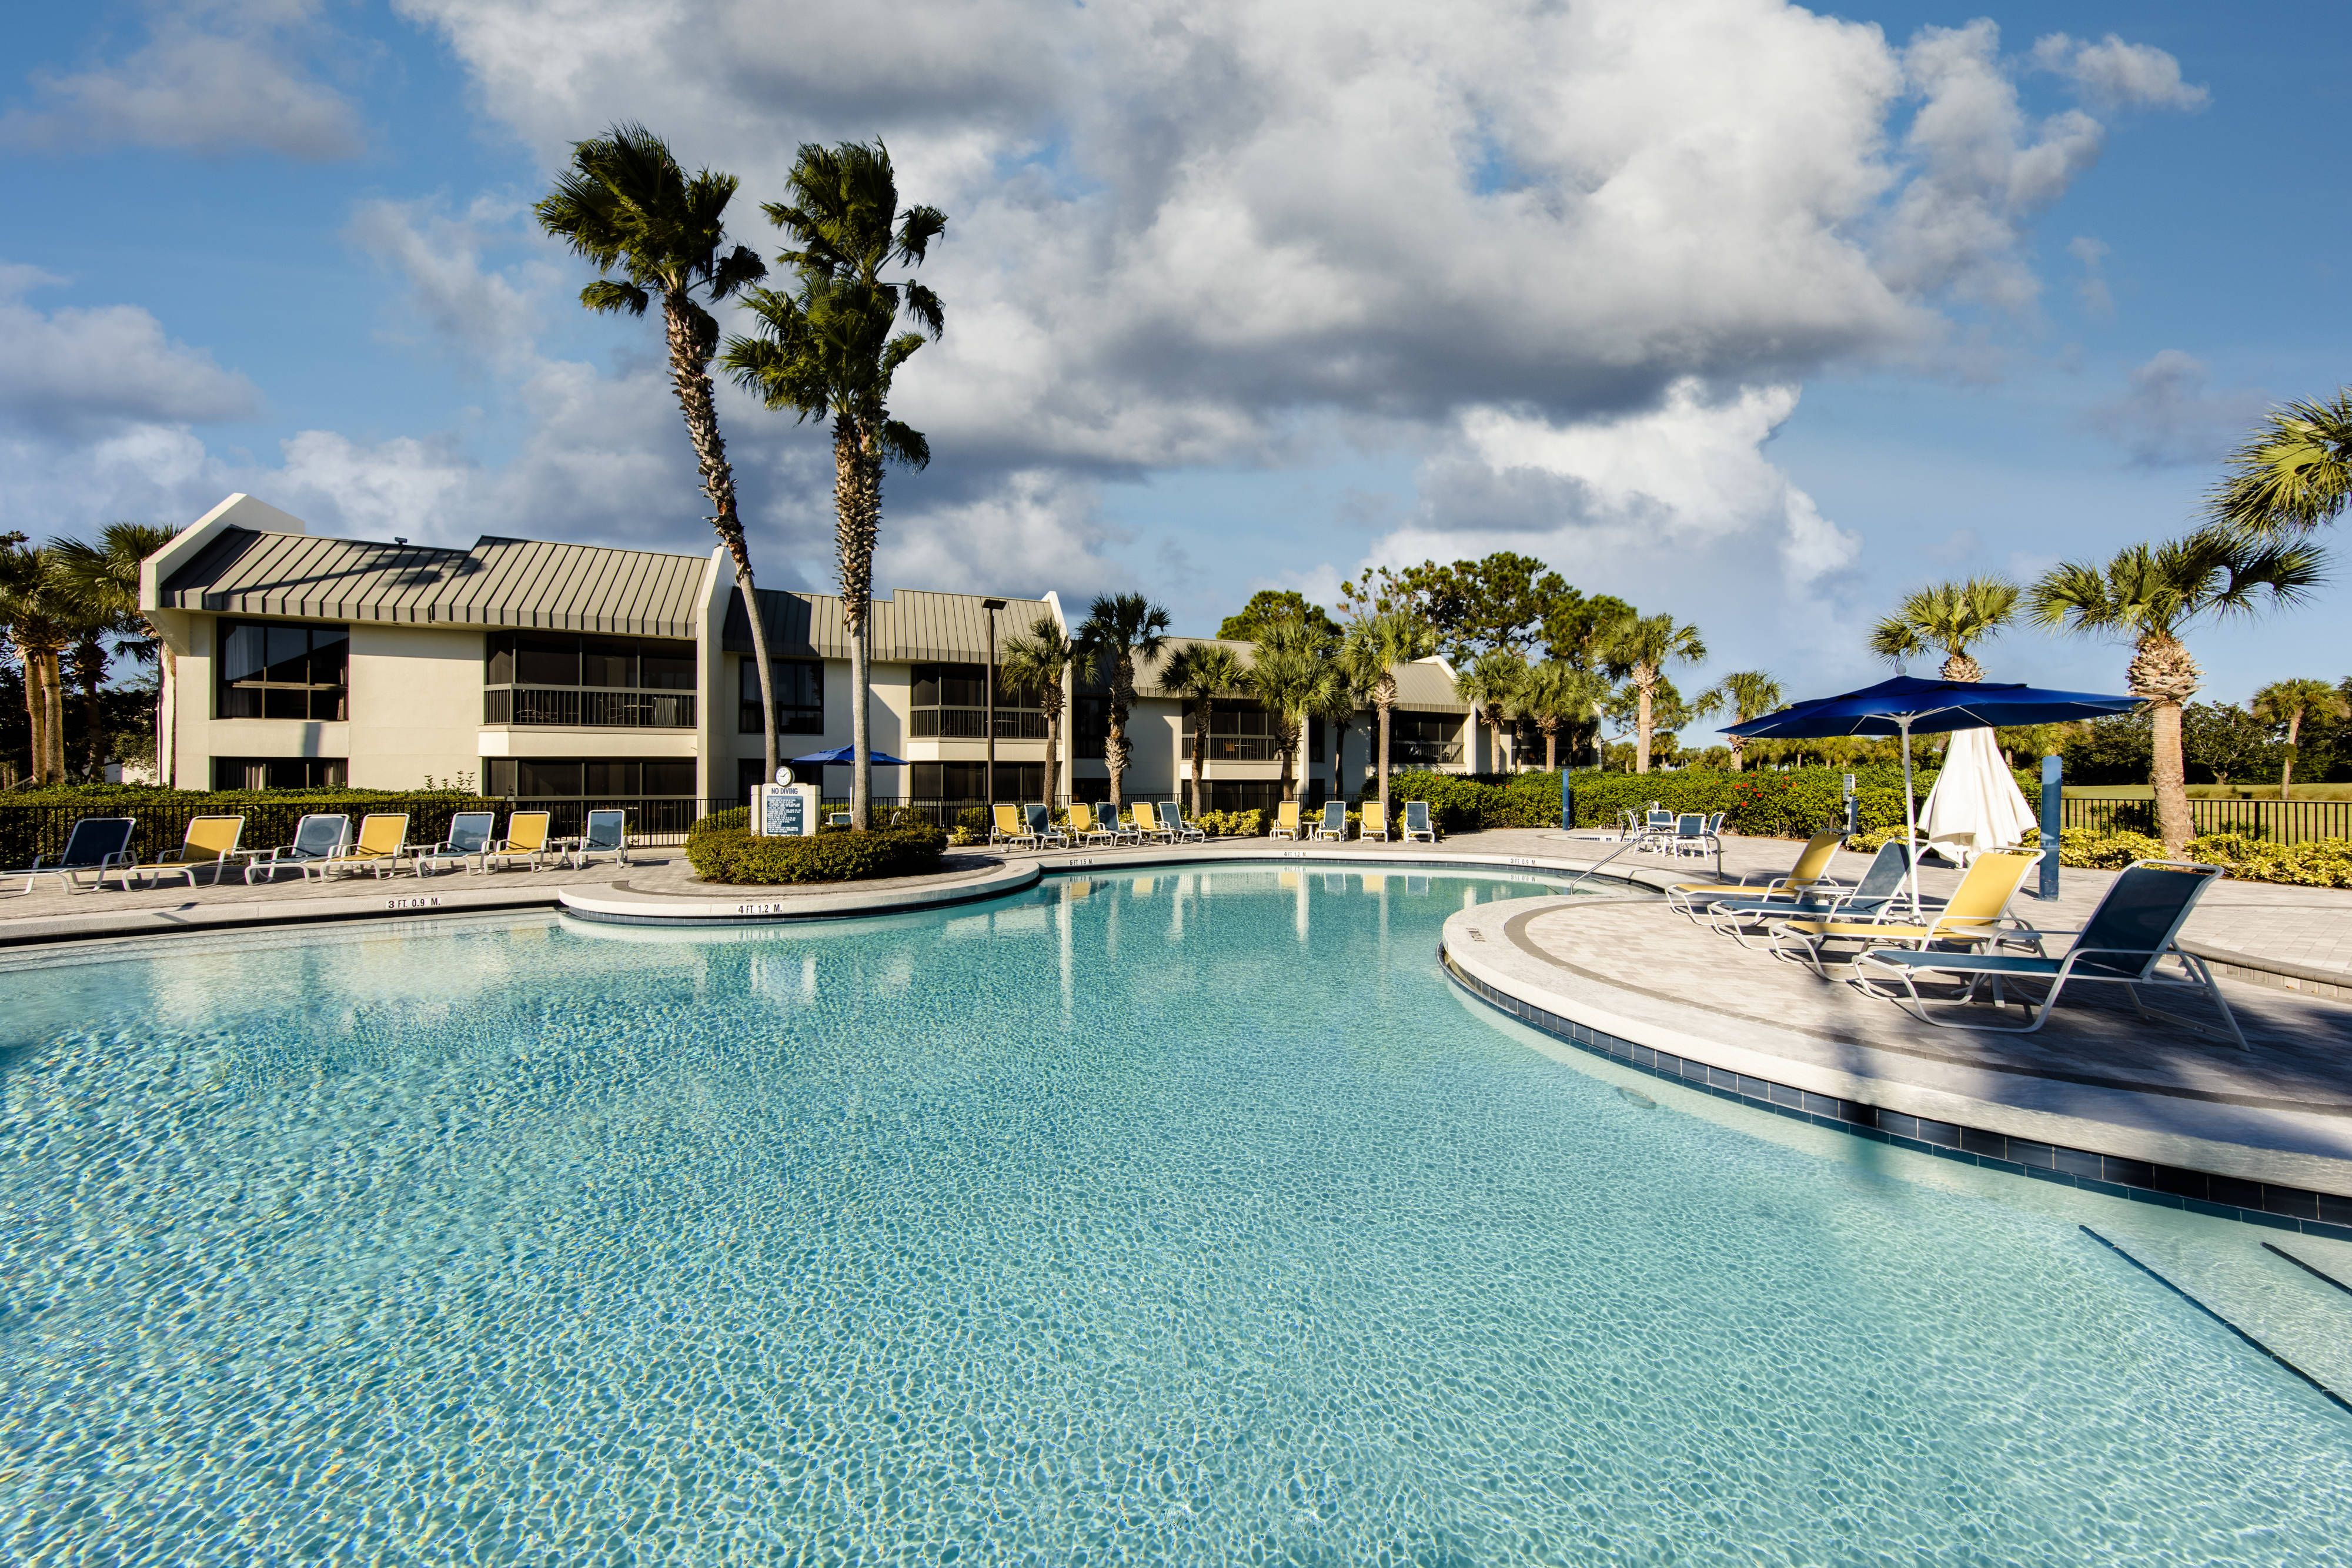 Marriott S Sabal Palms Outdoor Pool Suite Enjoy Relax Marriott Vacation Club Disney World Hotels Vacation Resorts